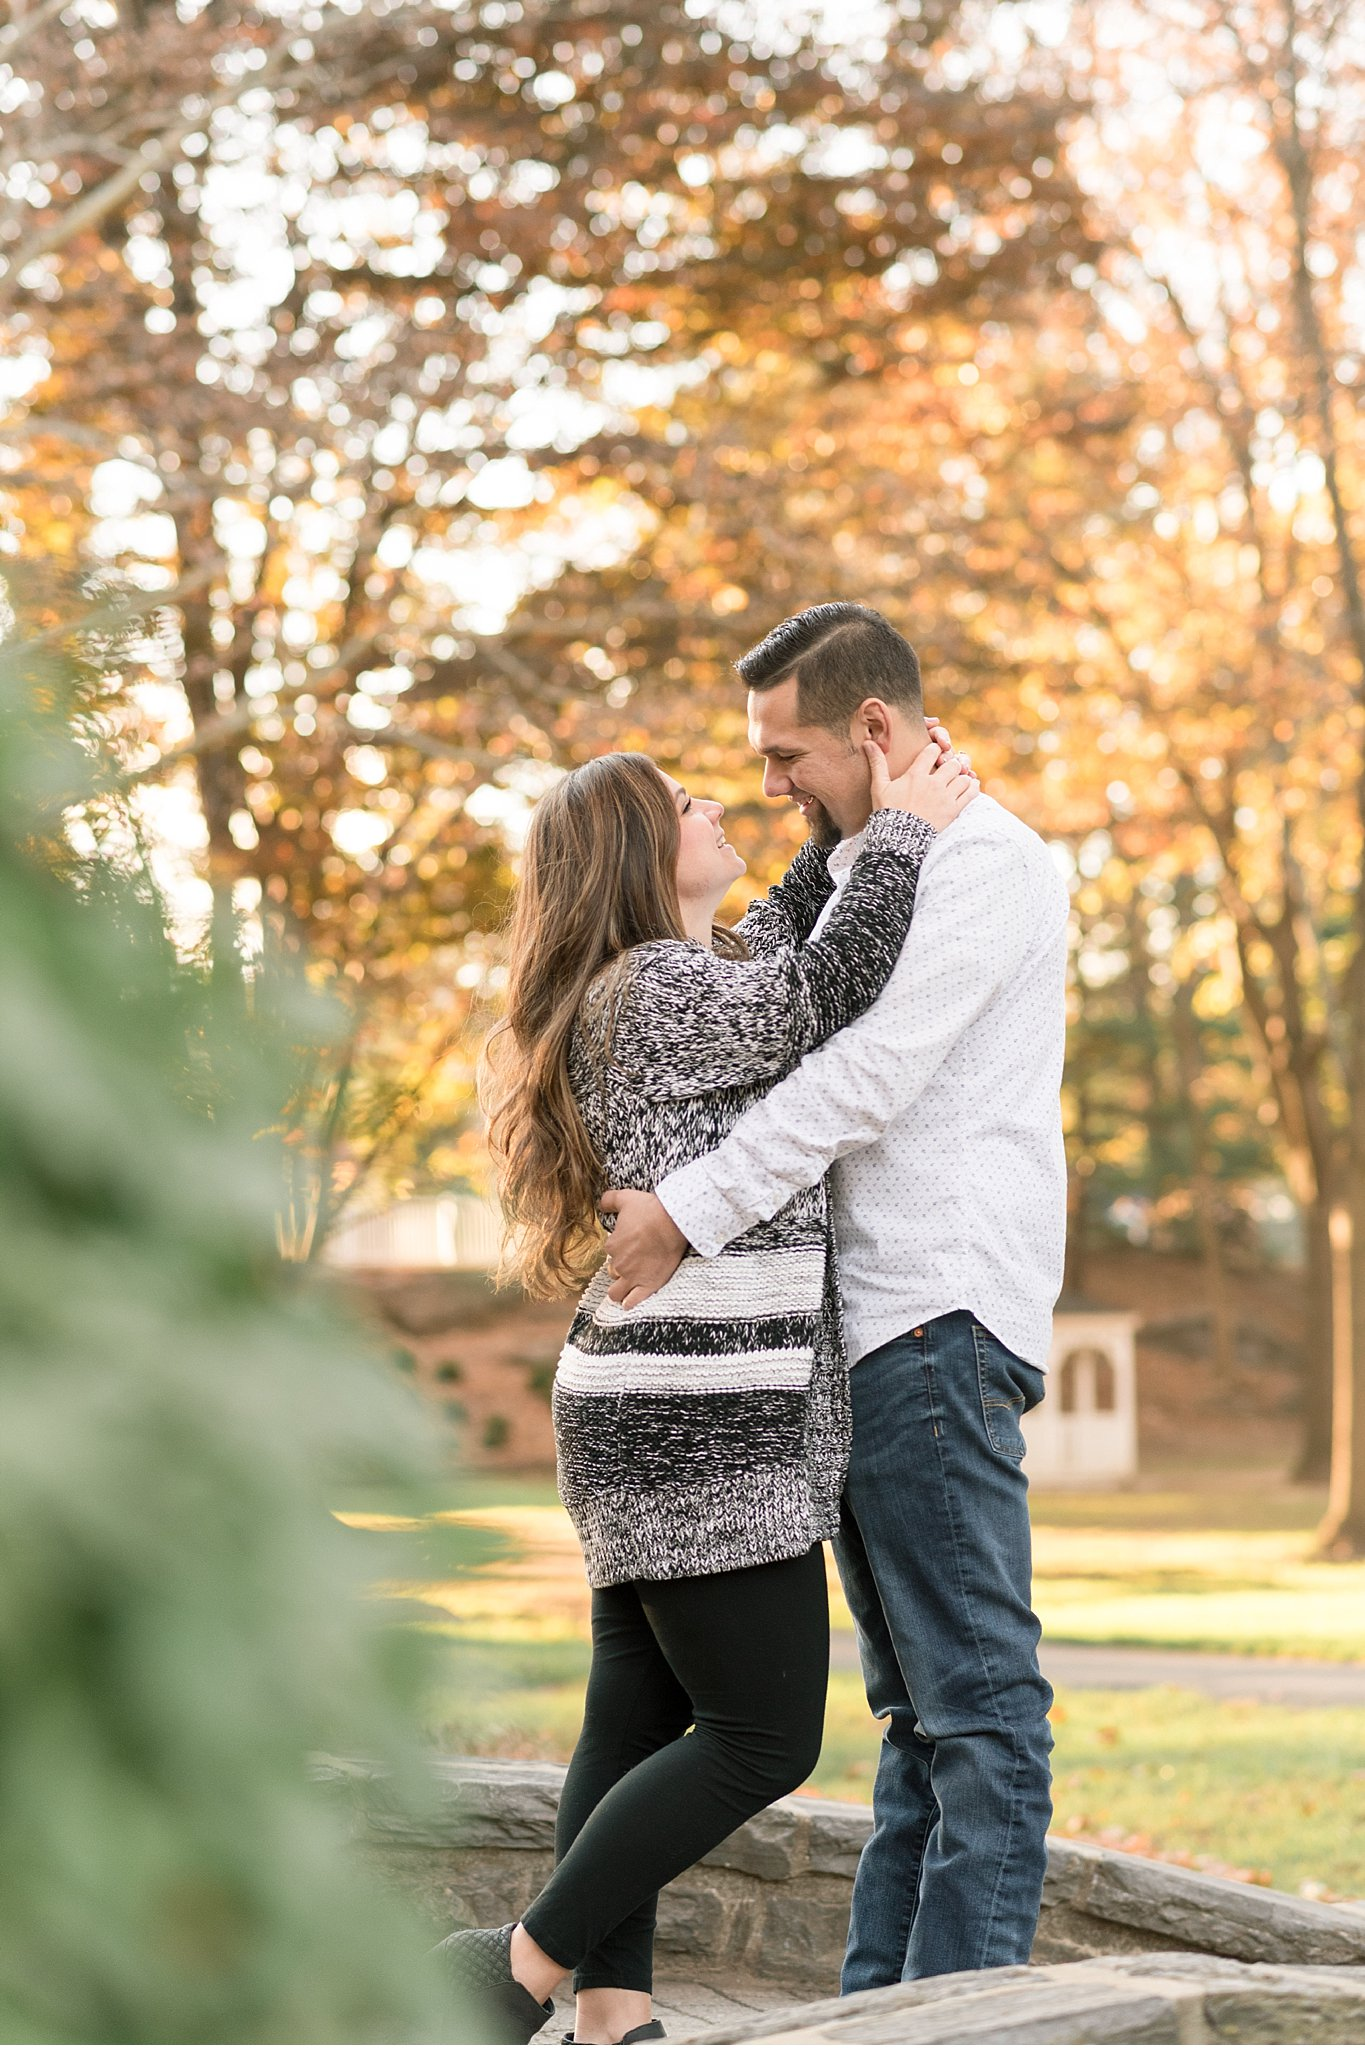 Lititz Springs Park engagement session and wedding photography photo_0433.jpg